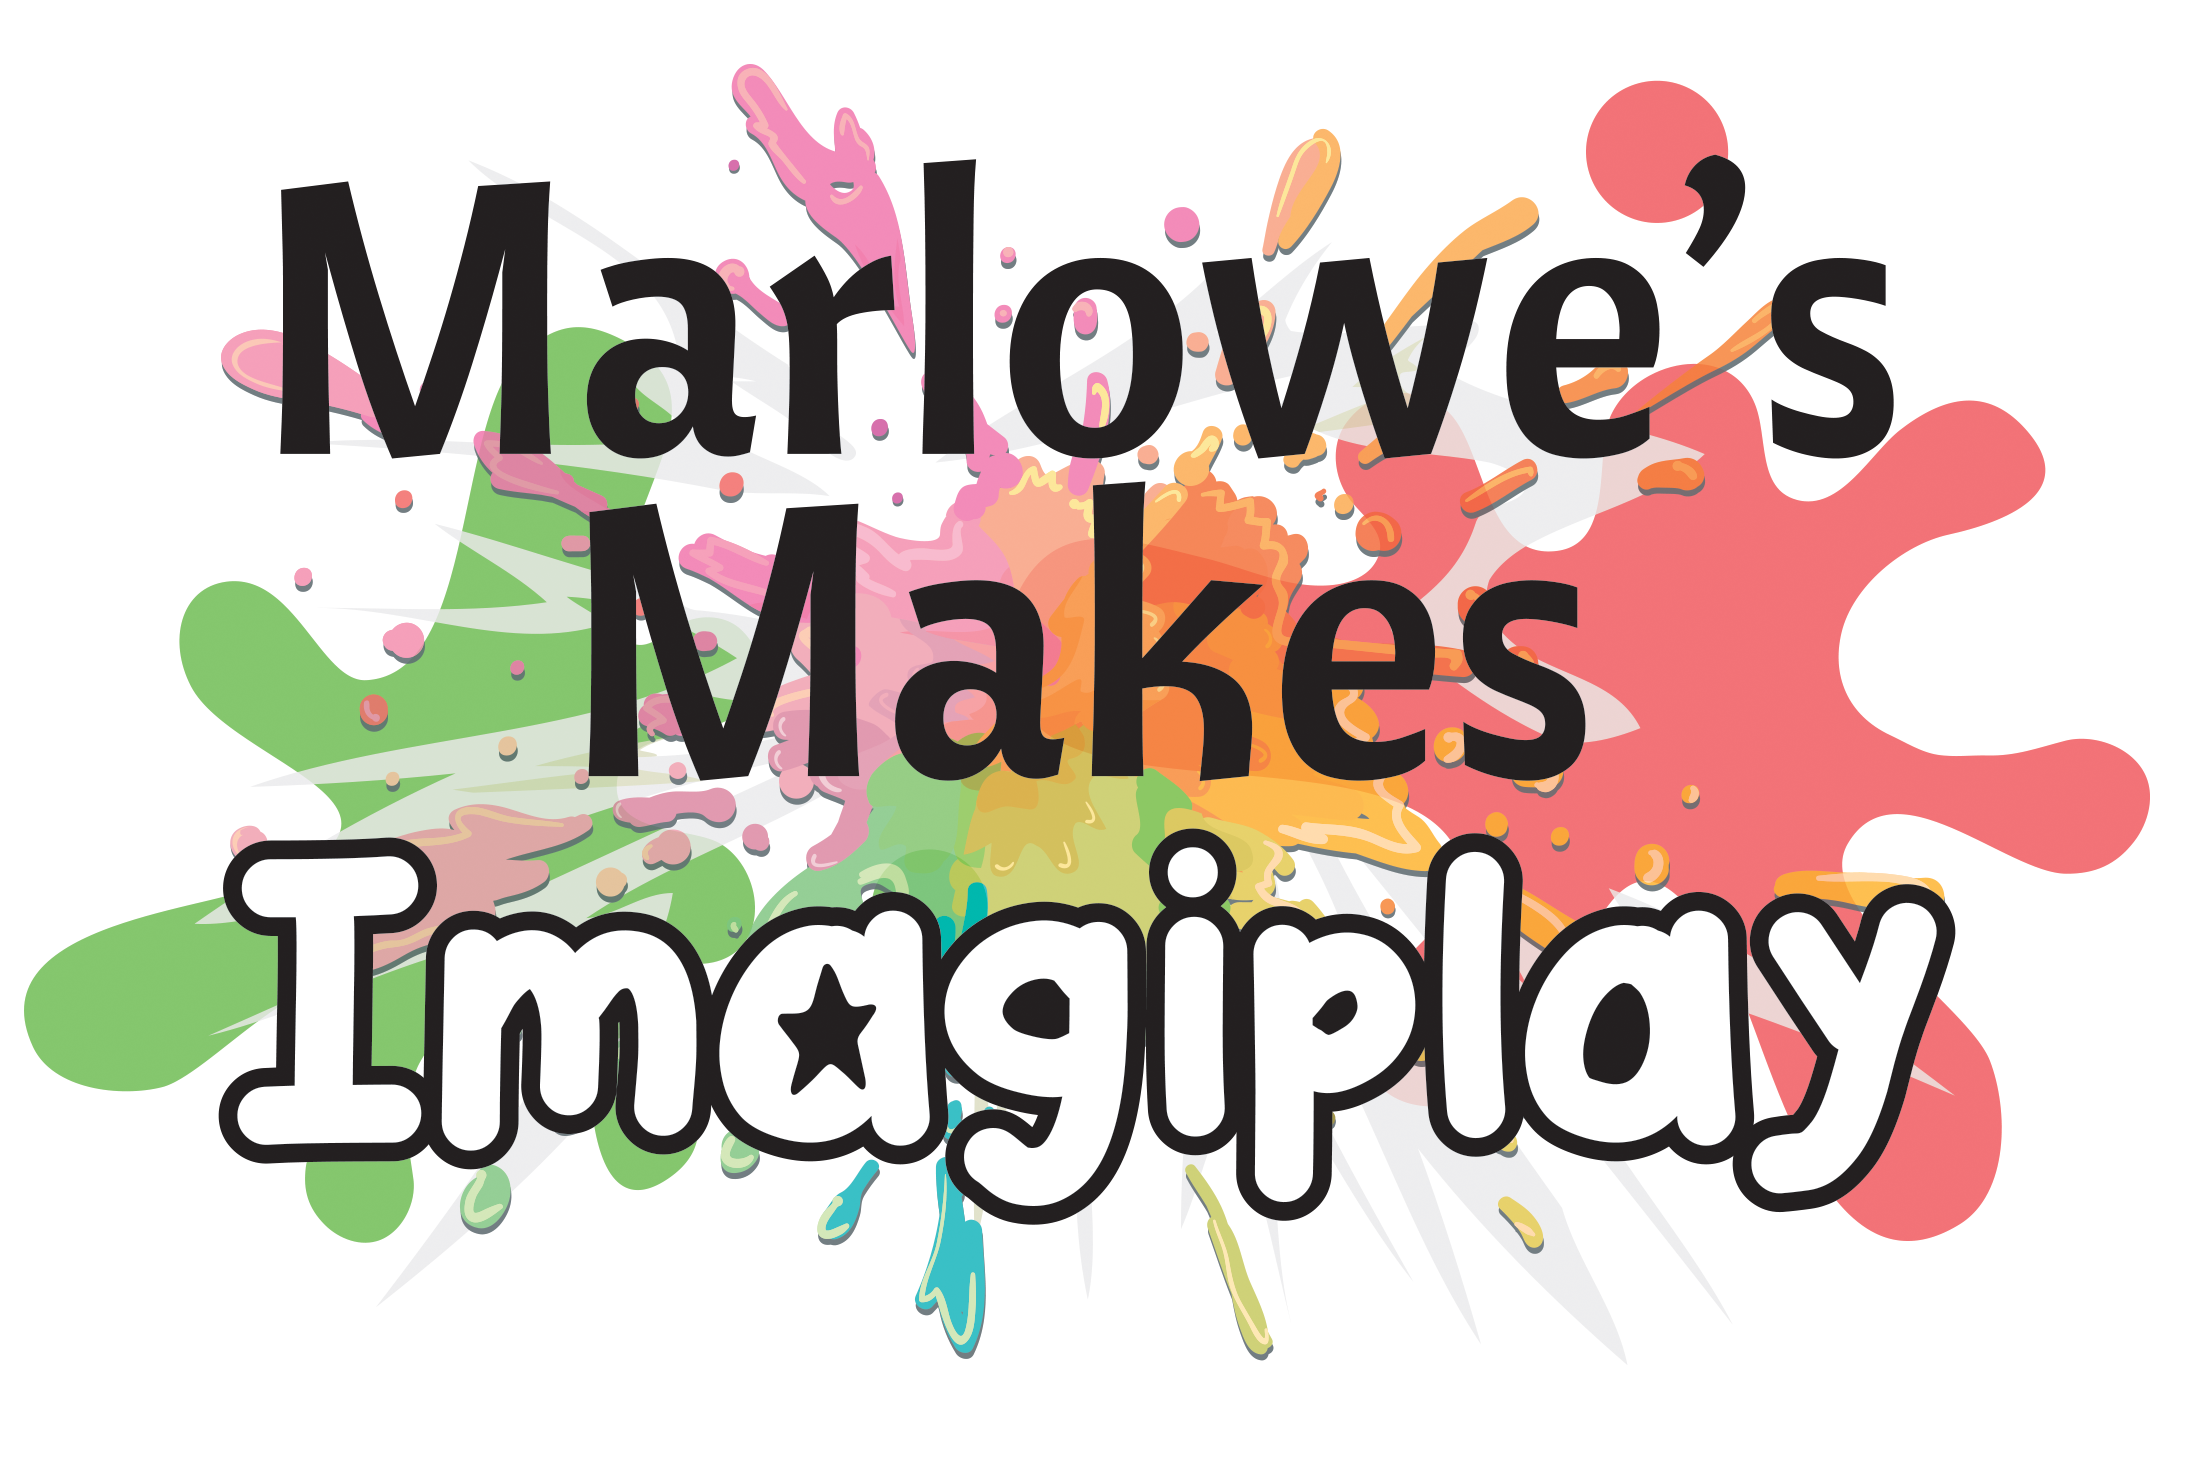 Marlowe's Makes Imagiplay